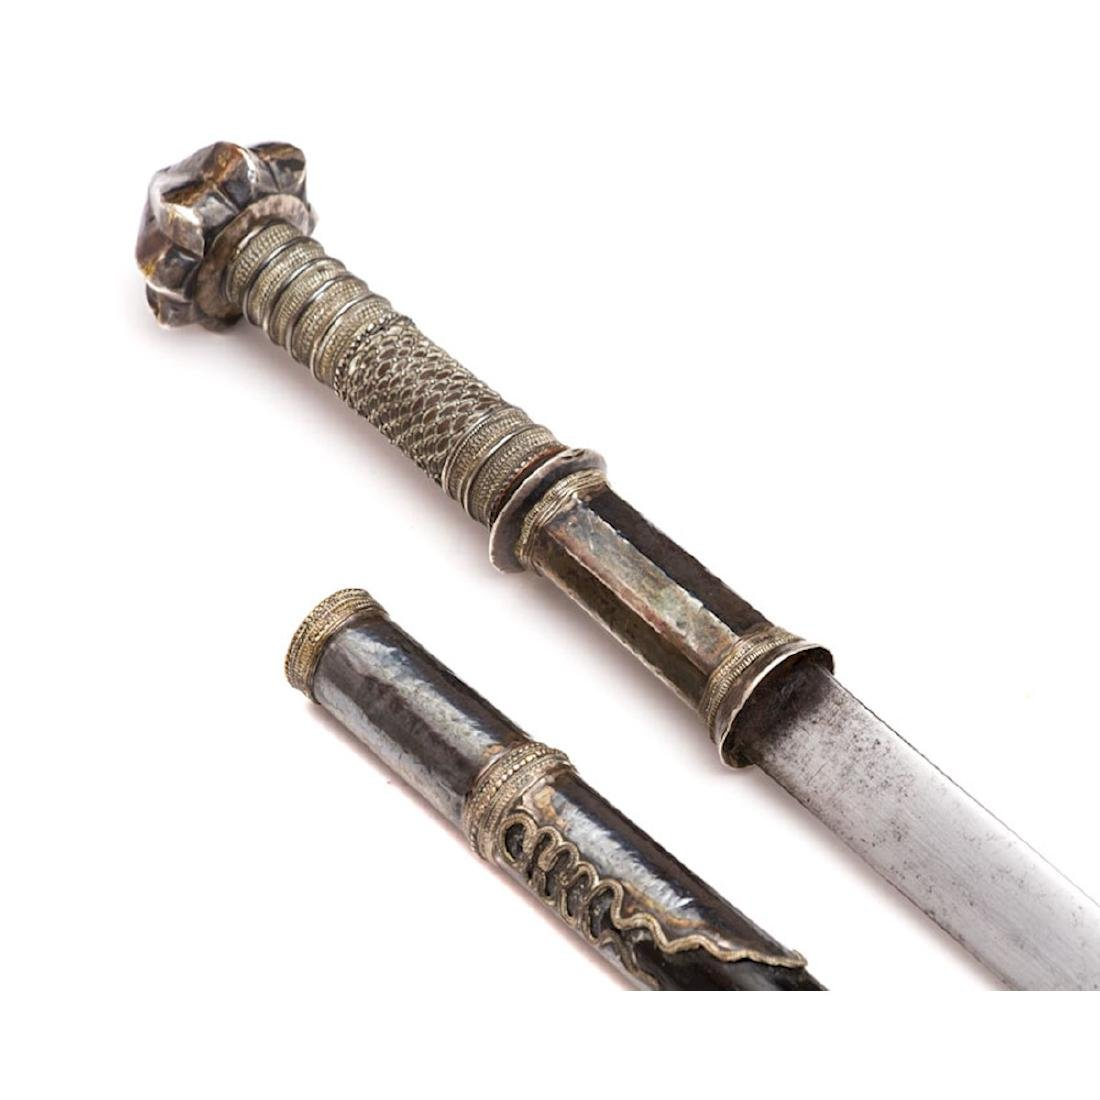 DHA SWORD DAGGER, 19TH C. - 9